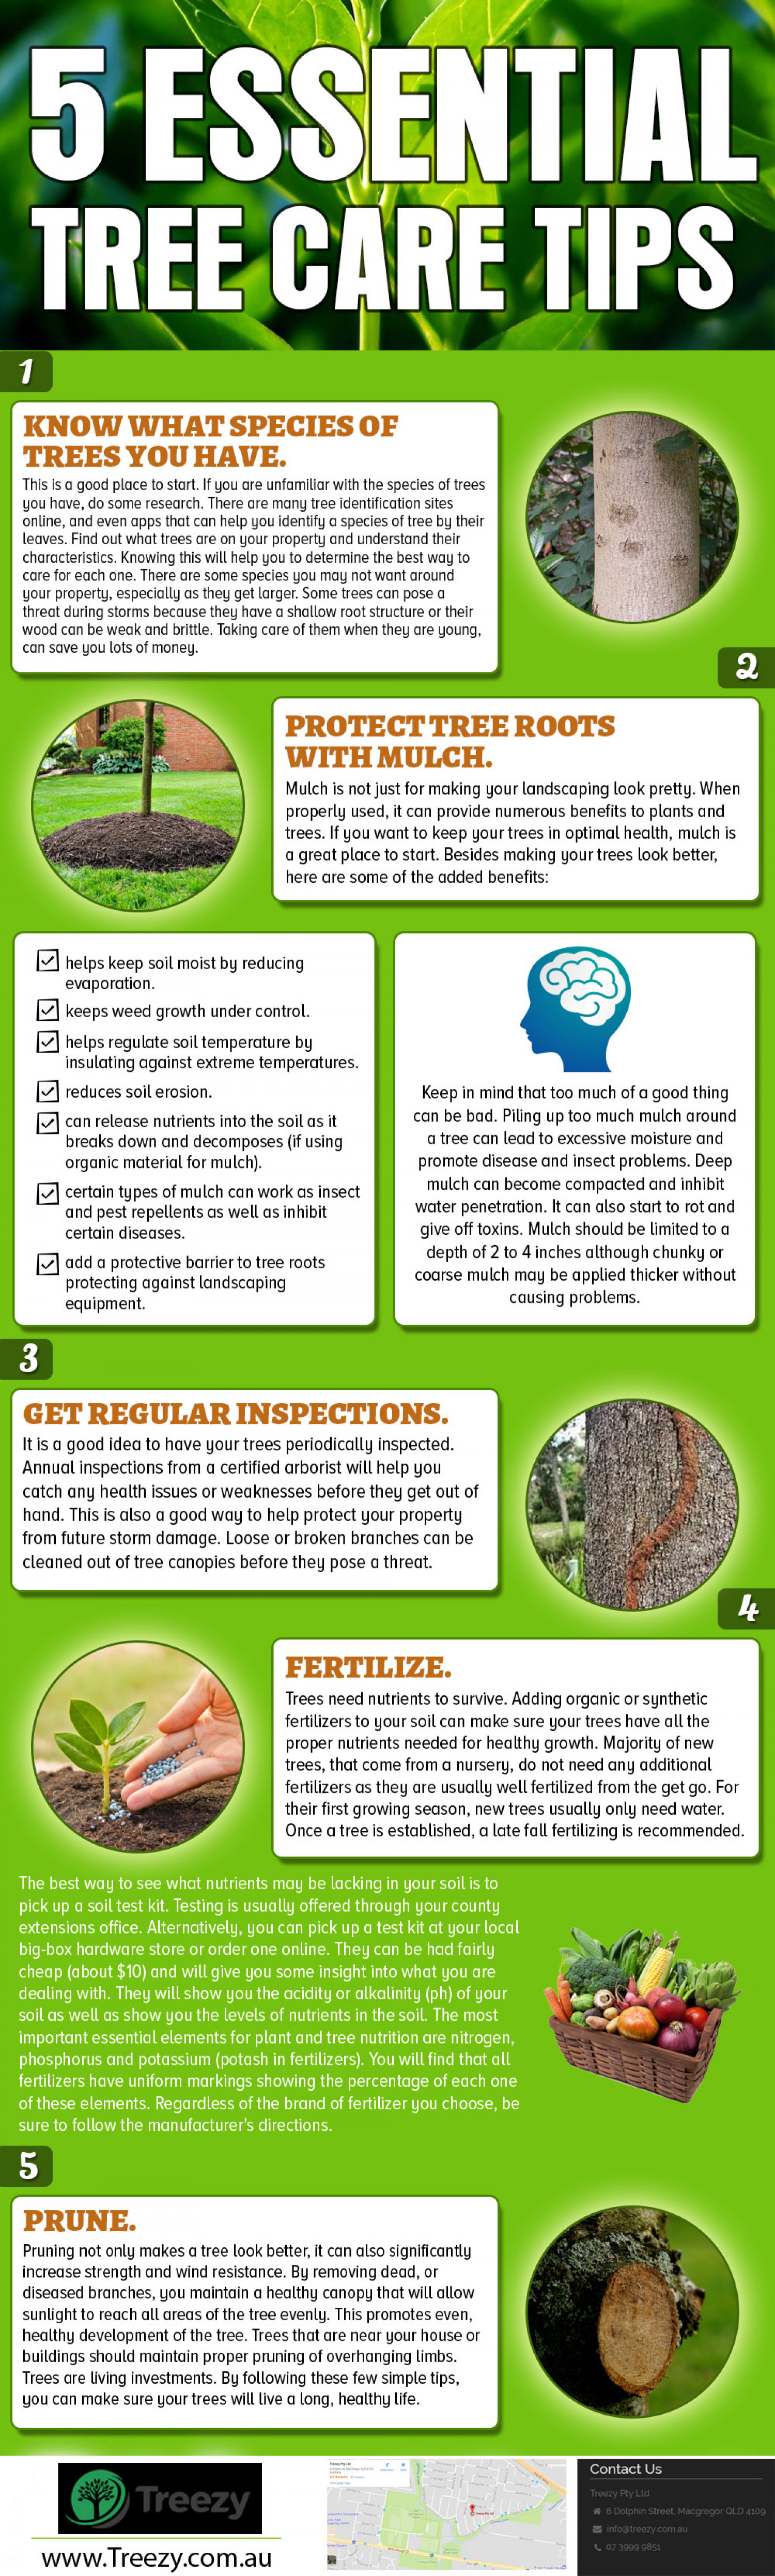 5 Essential Tree care Tips Infographic